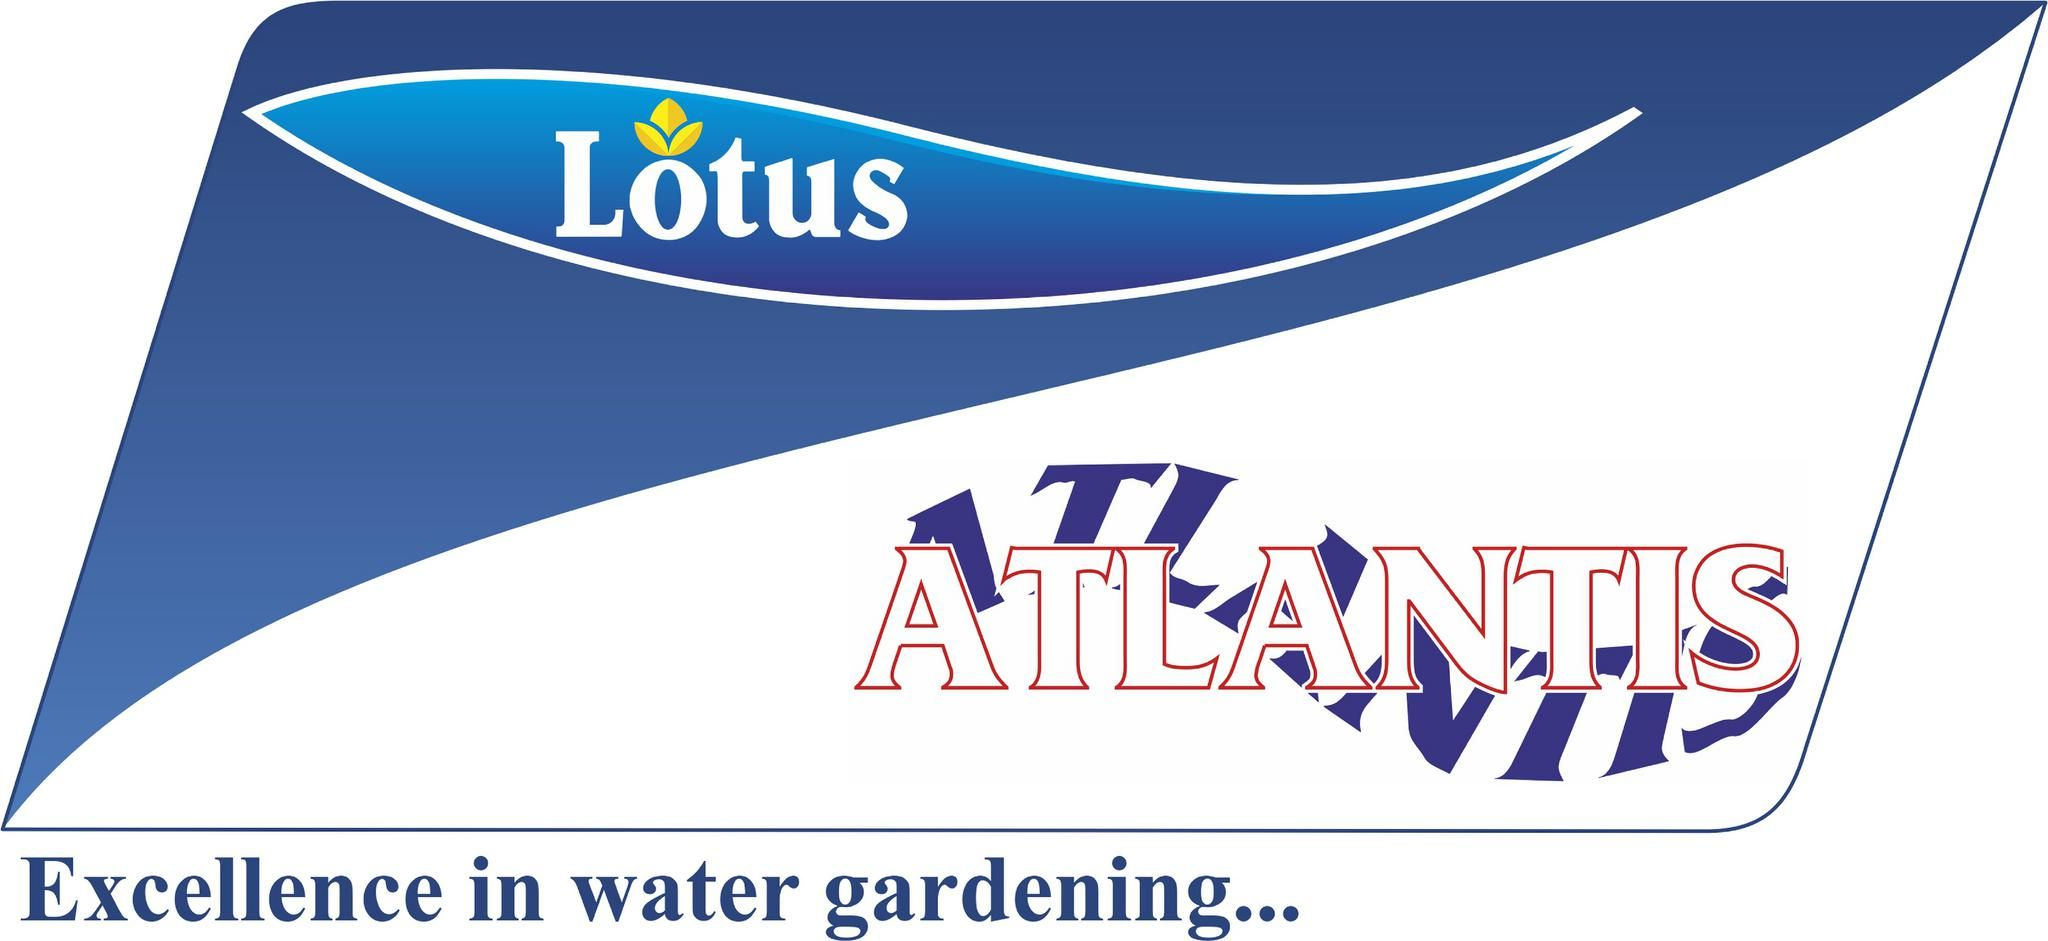 Lotus Water Garden Products